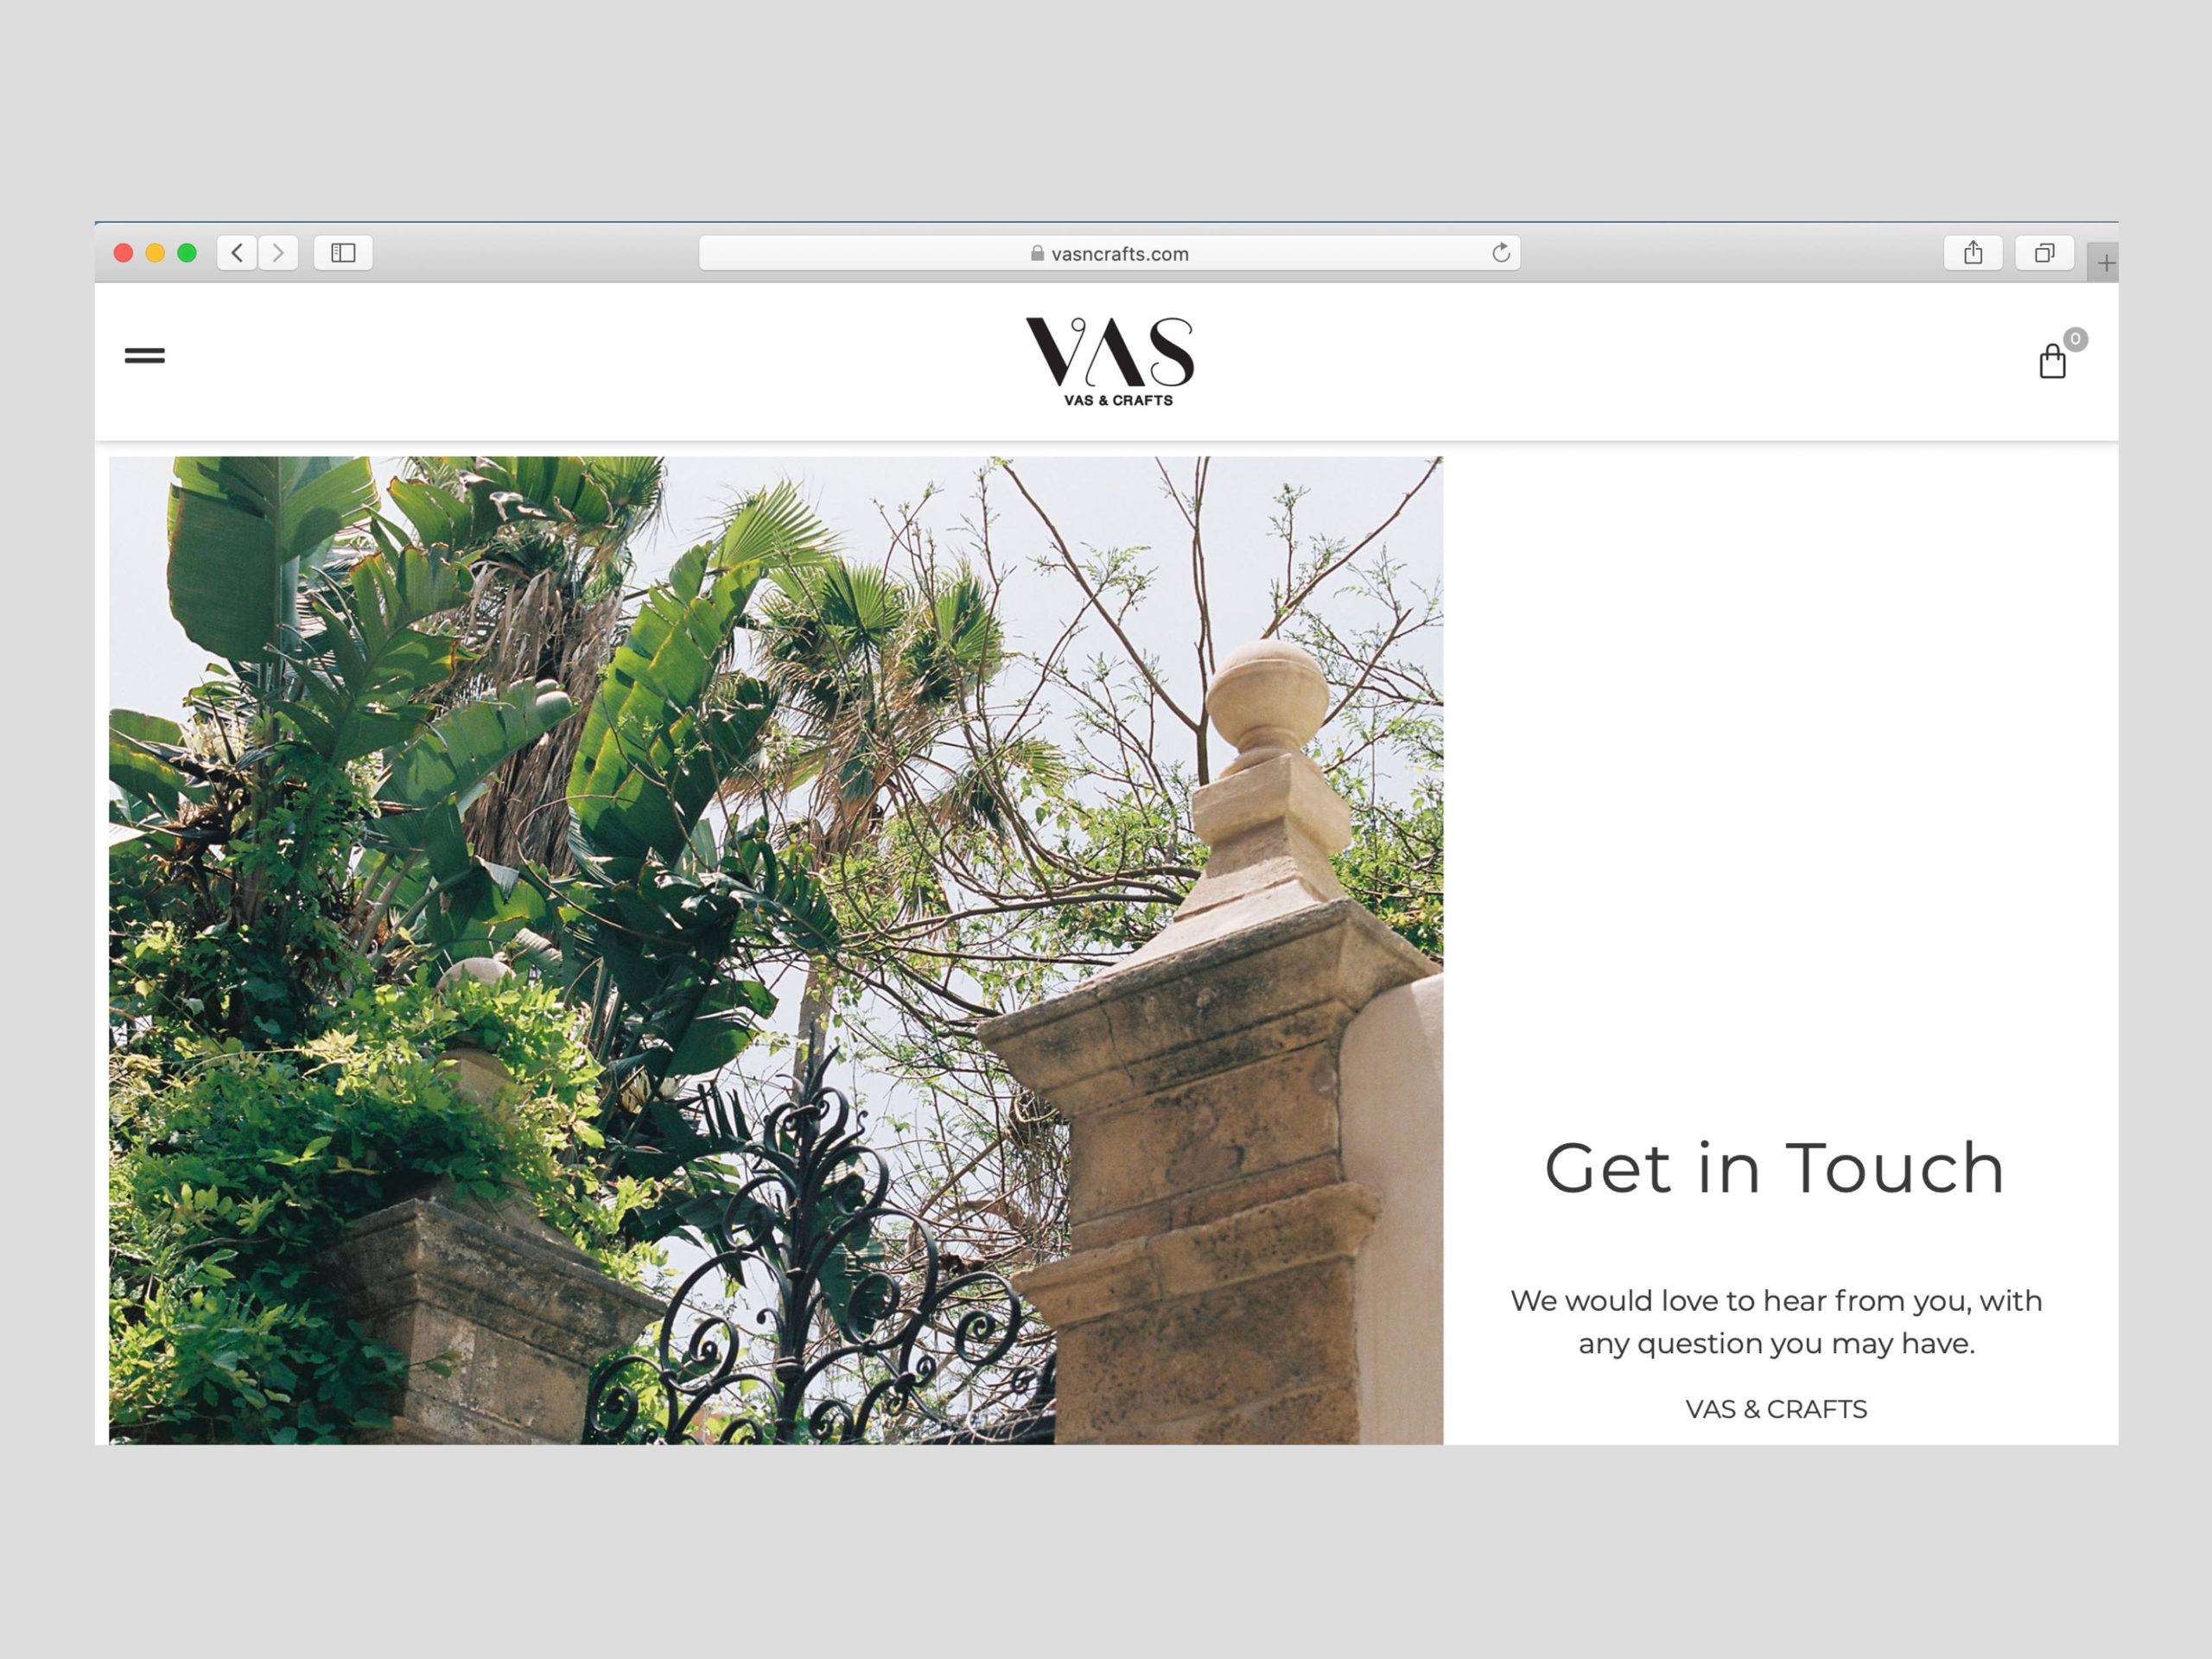 VAS website screenshot